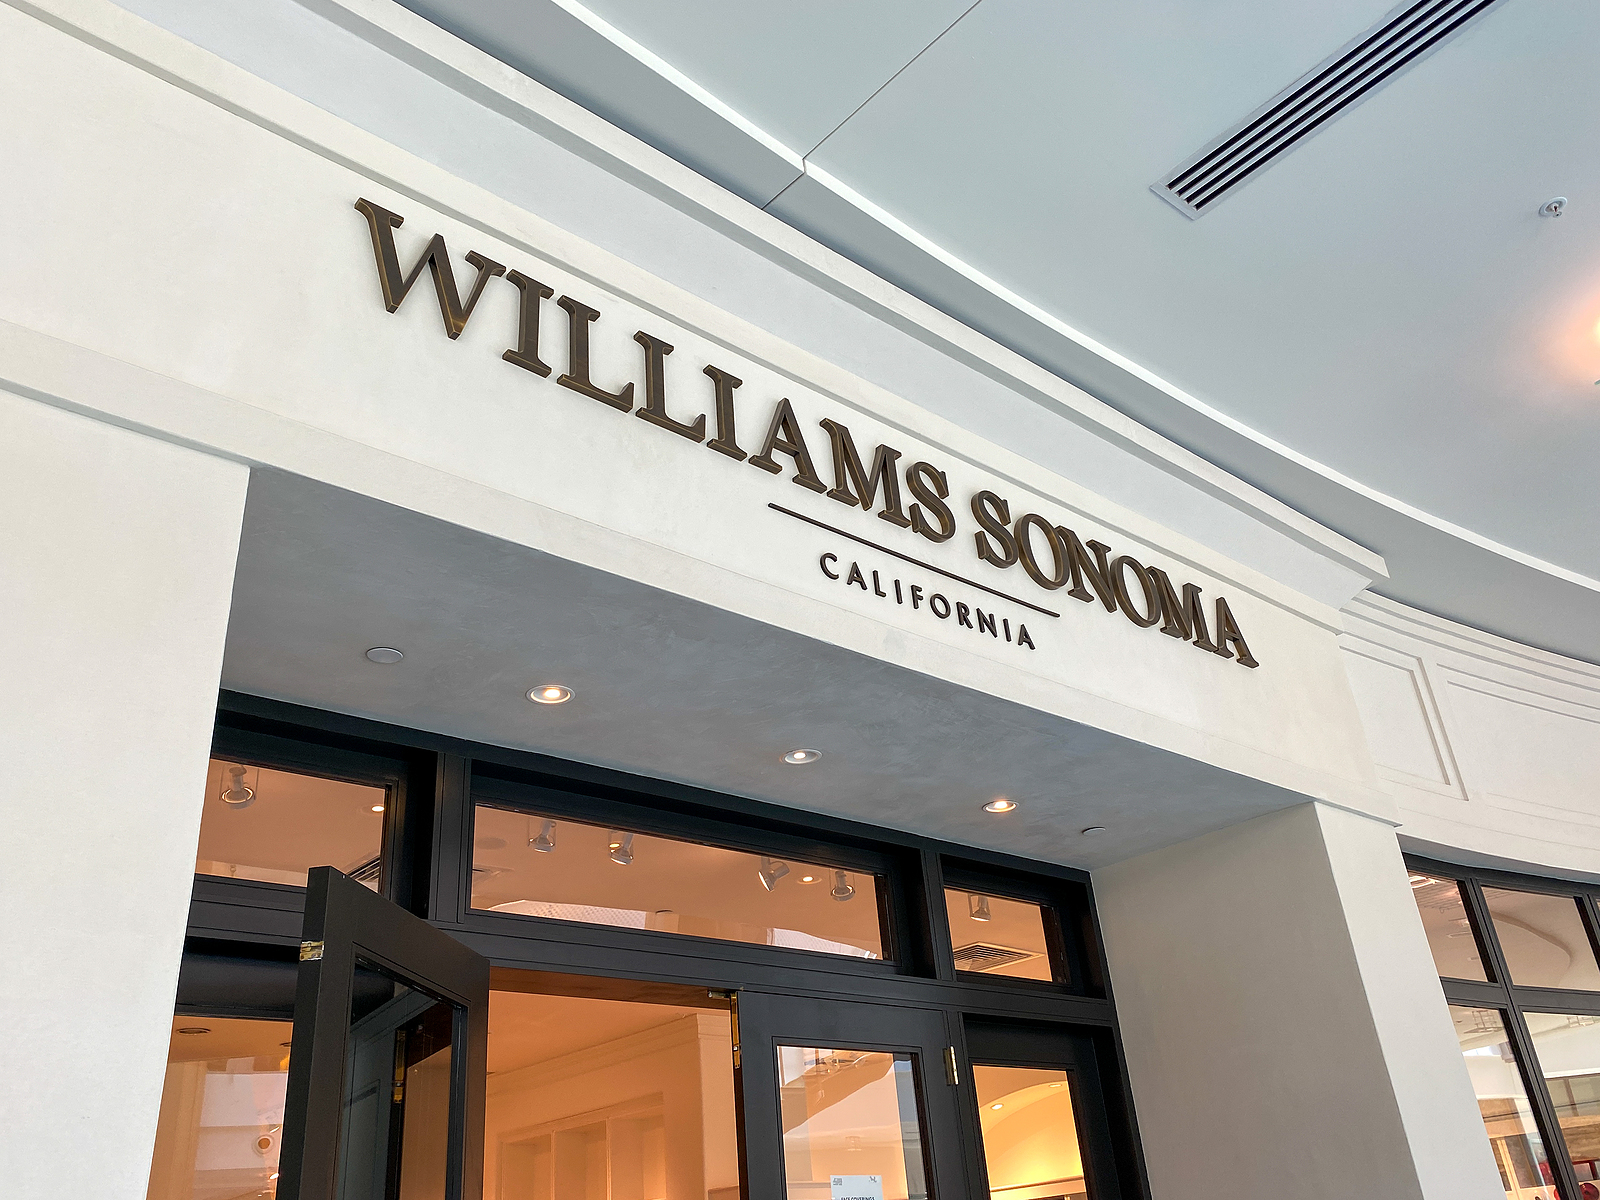 Williams Sonoma WSM stock news and analysis